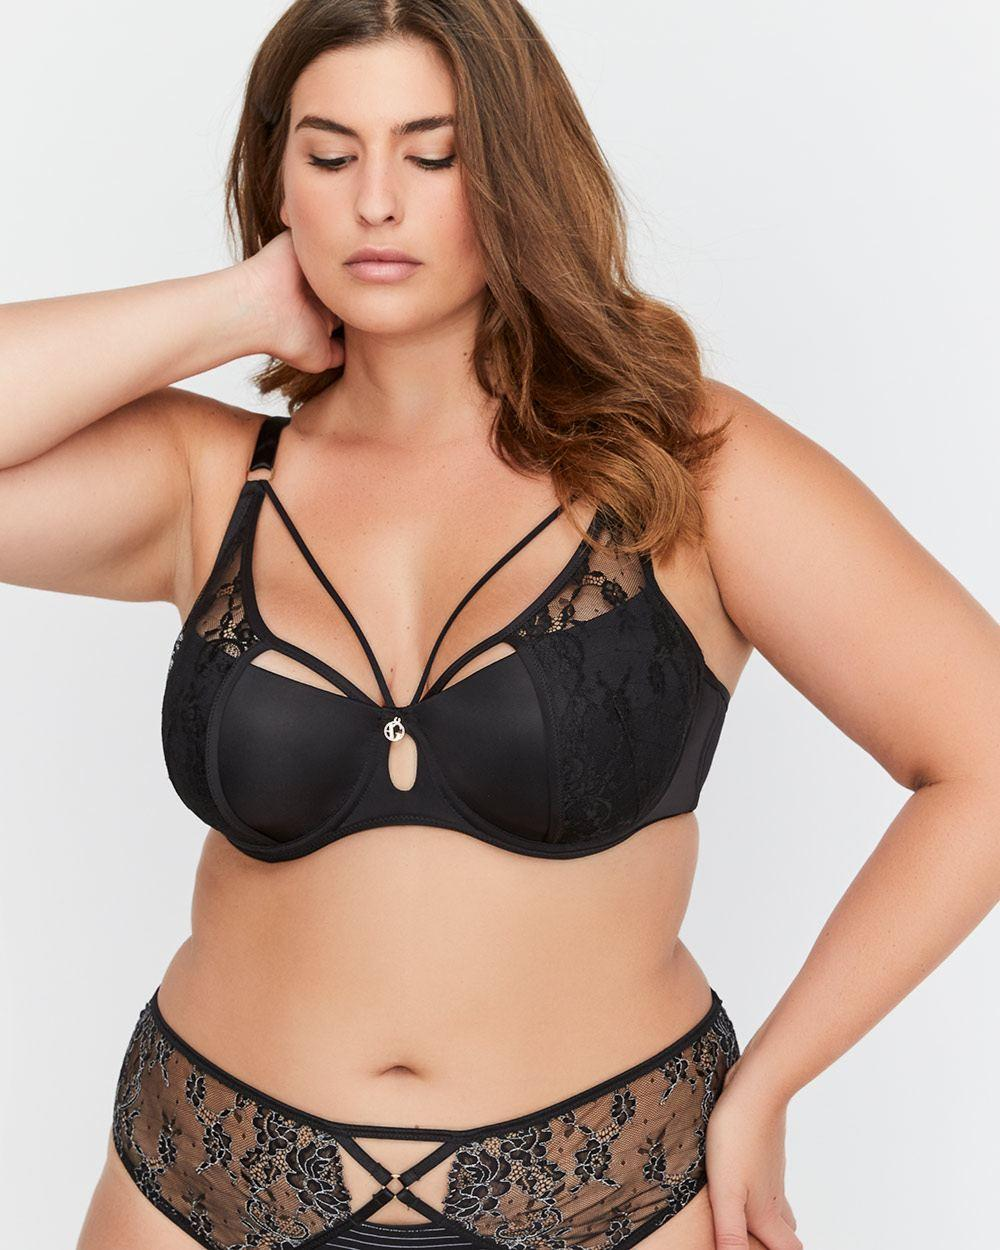 d7a7697786 Lyst - Addition Elle Micro Jersey Demi Cup Diva Bra With Lace ...